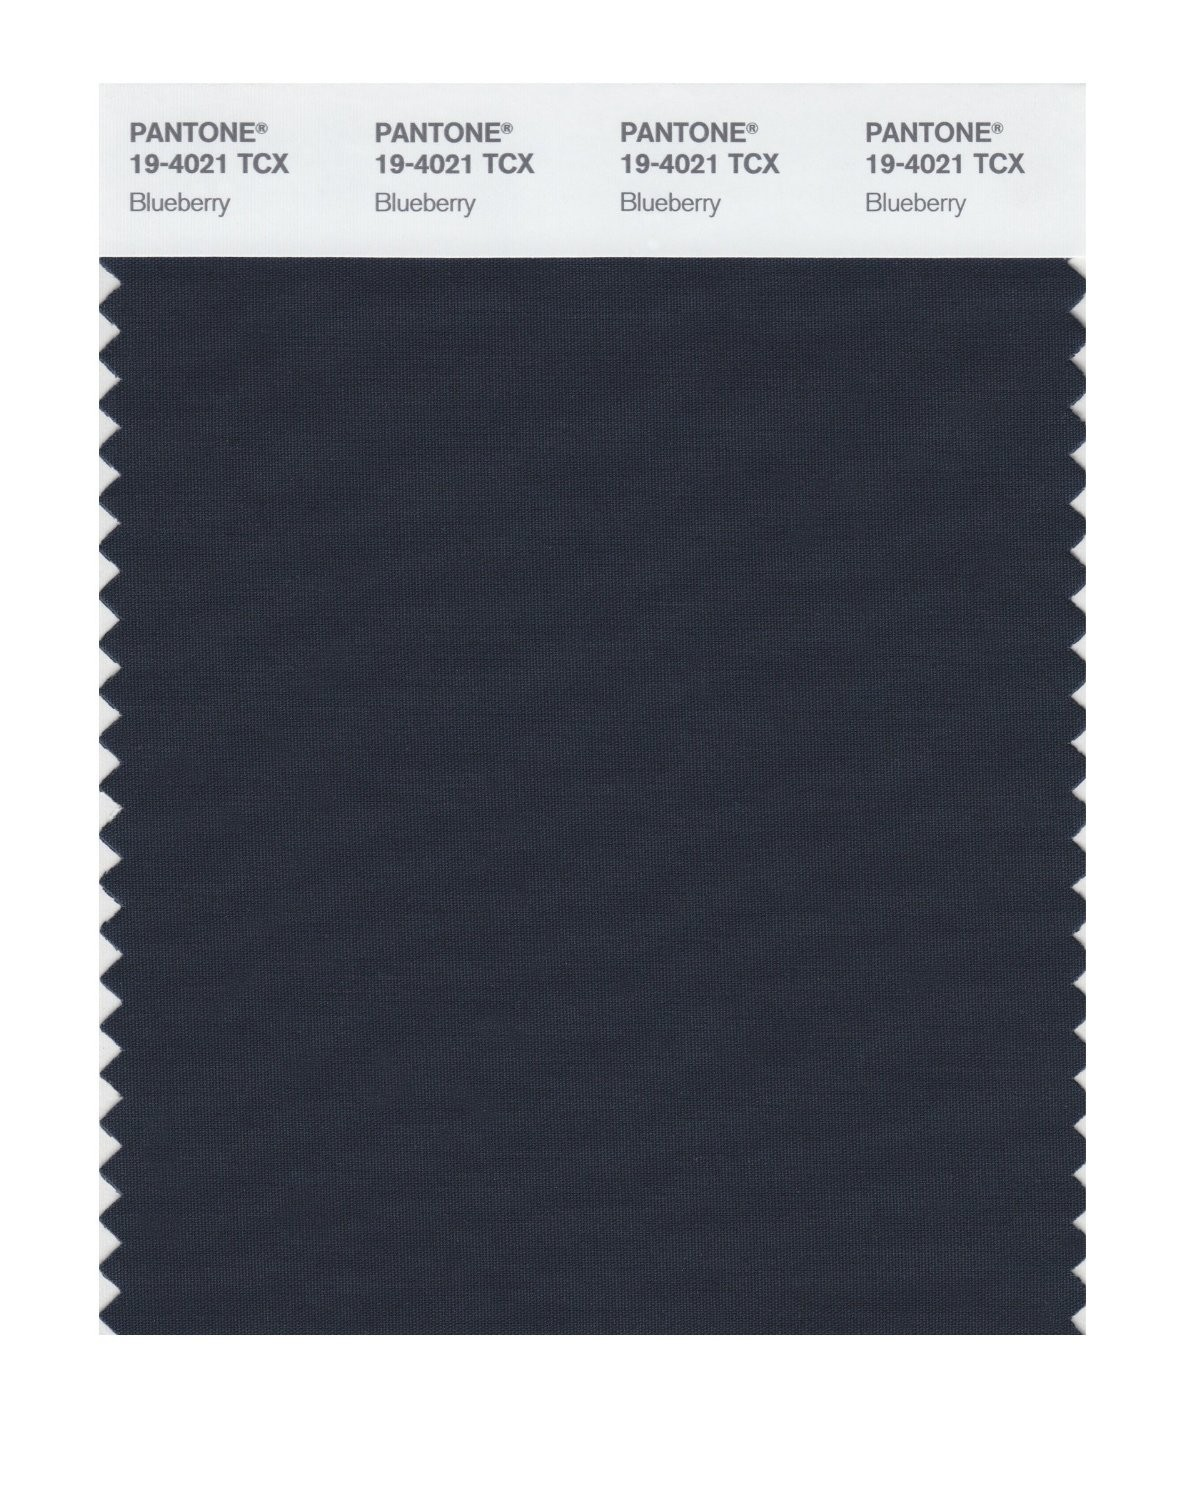 Pantone 19-4021 TCX Swatch Card Blueberry